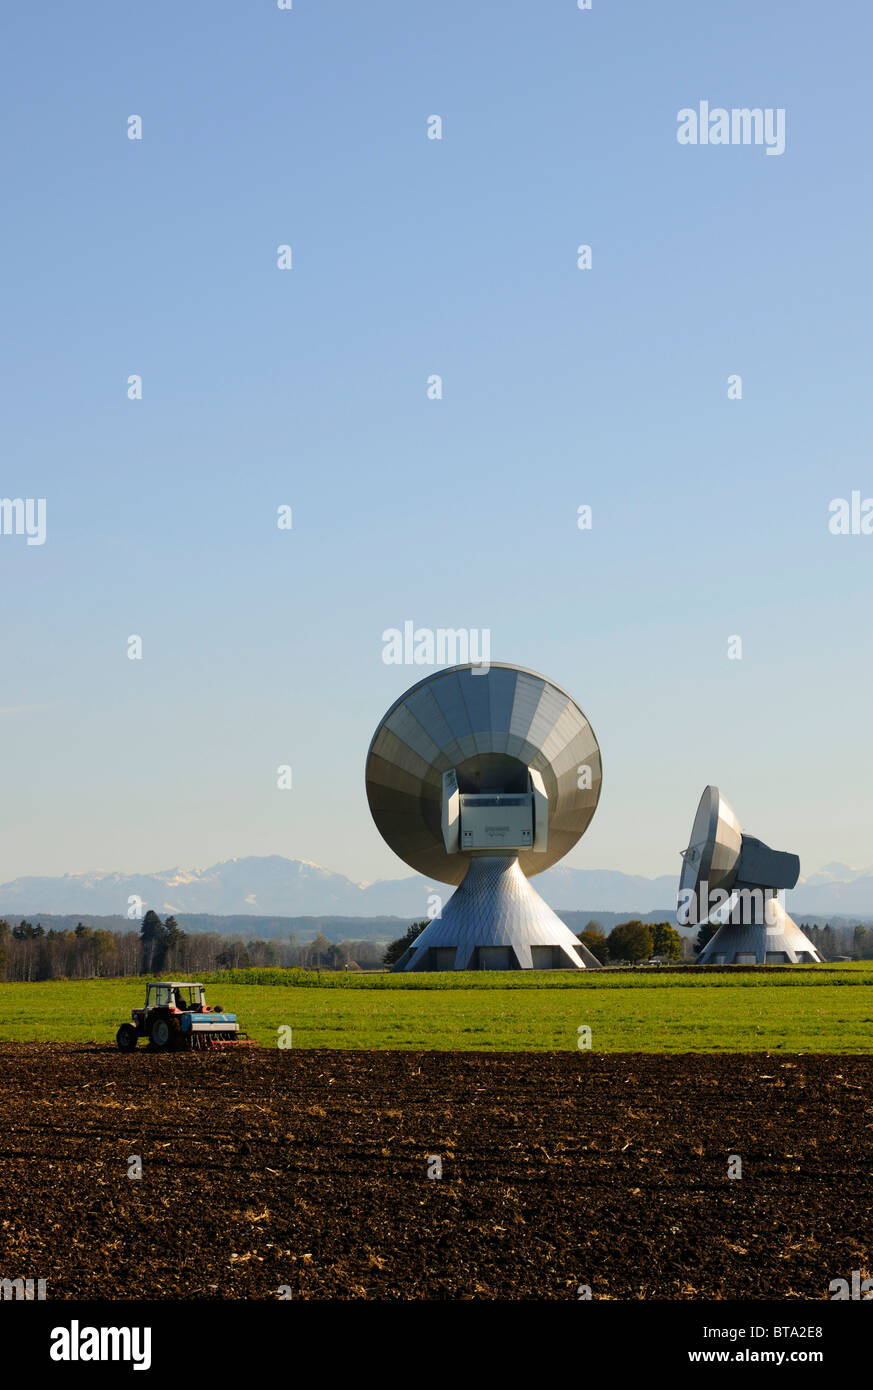 Earth station, parabolic aerials, Raisting, Bavaria, Germany, Europe - Stock Image